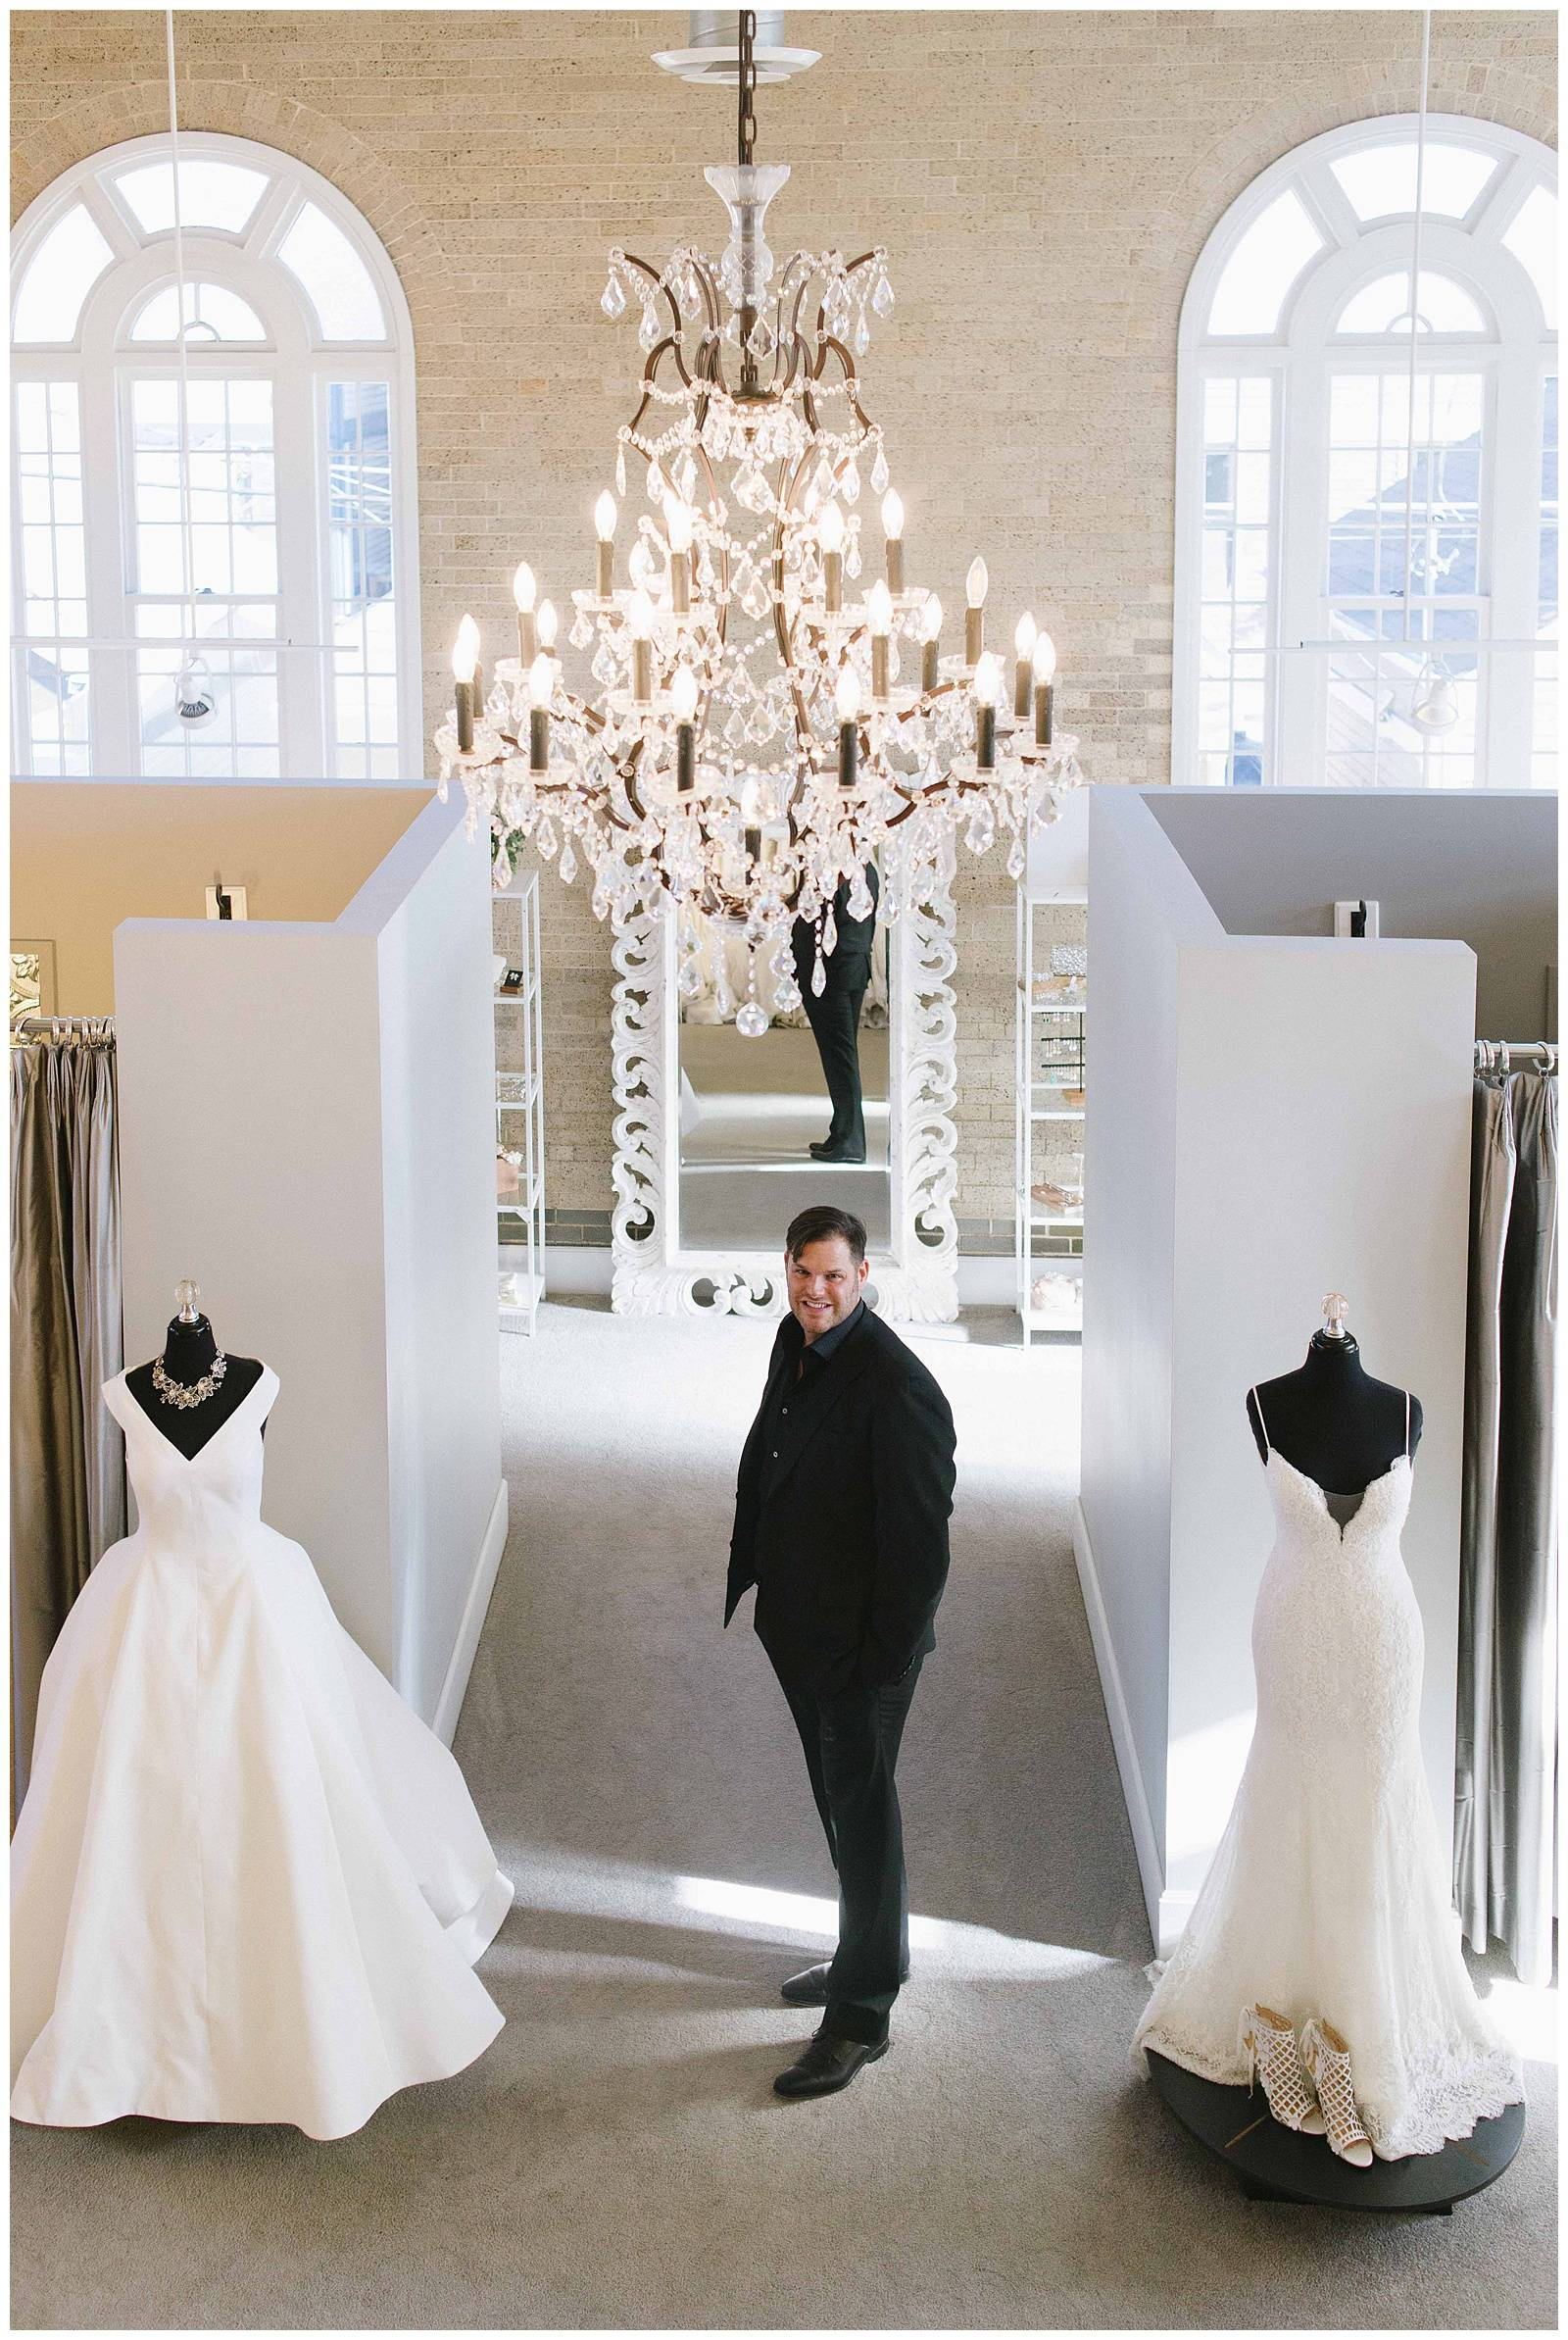 Matthew Christopher | wedding dress designer | Little White Dress Bridal Shop